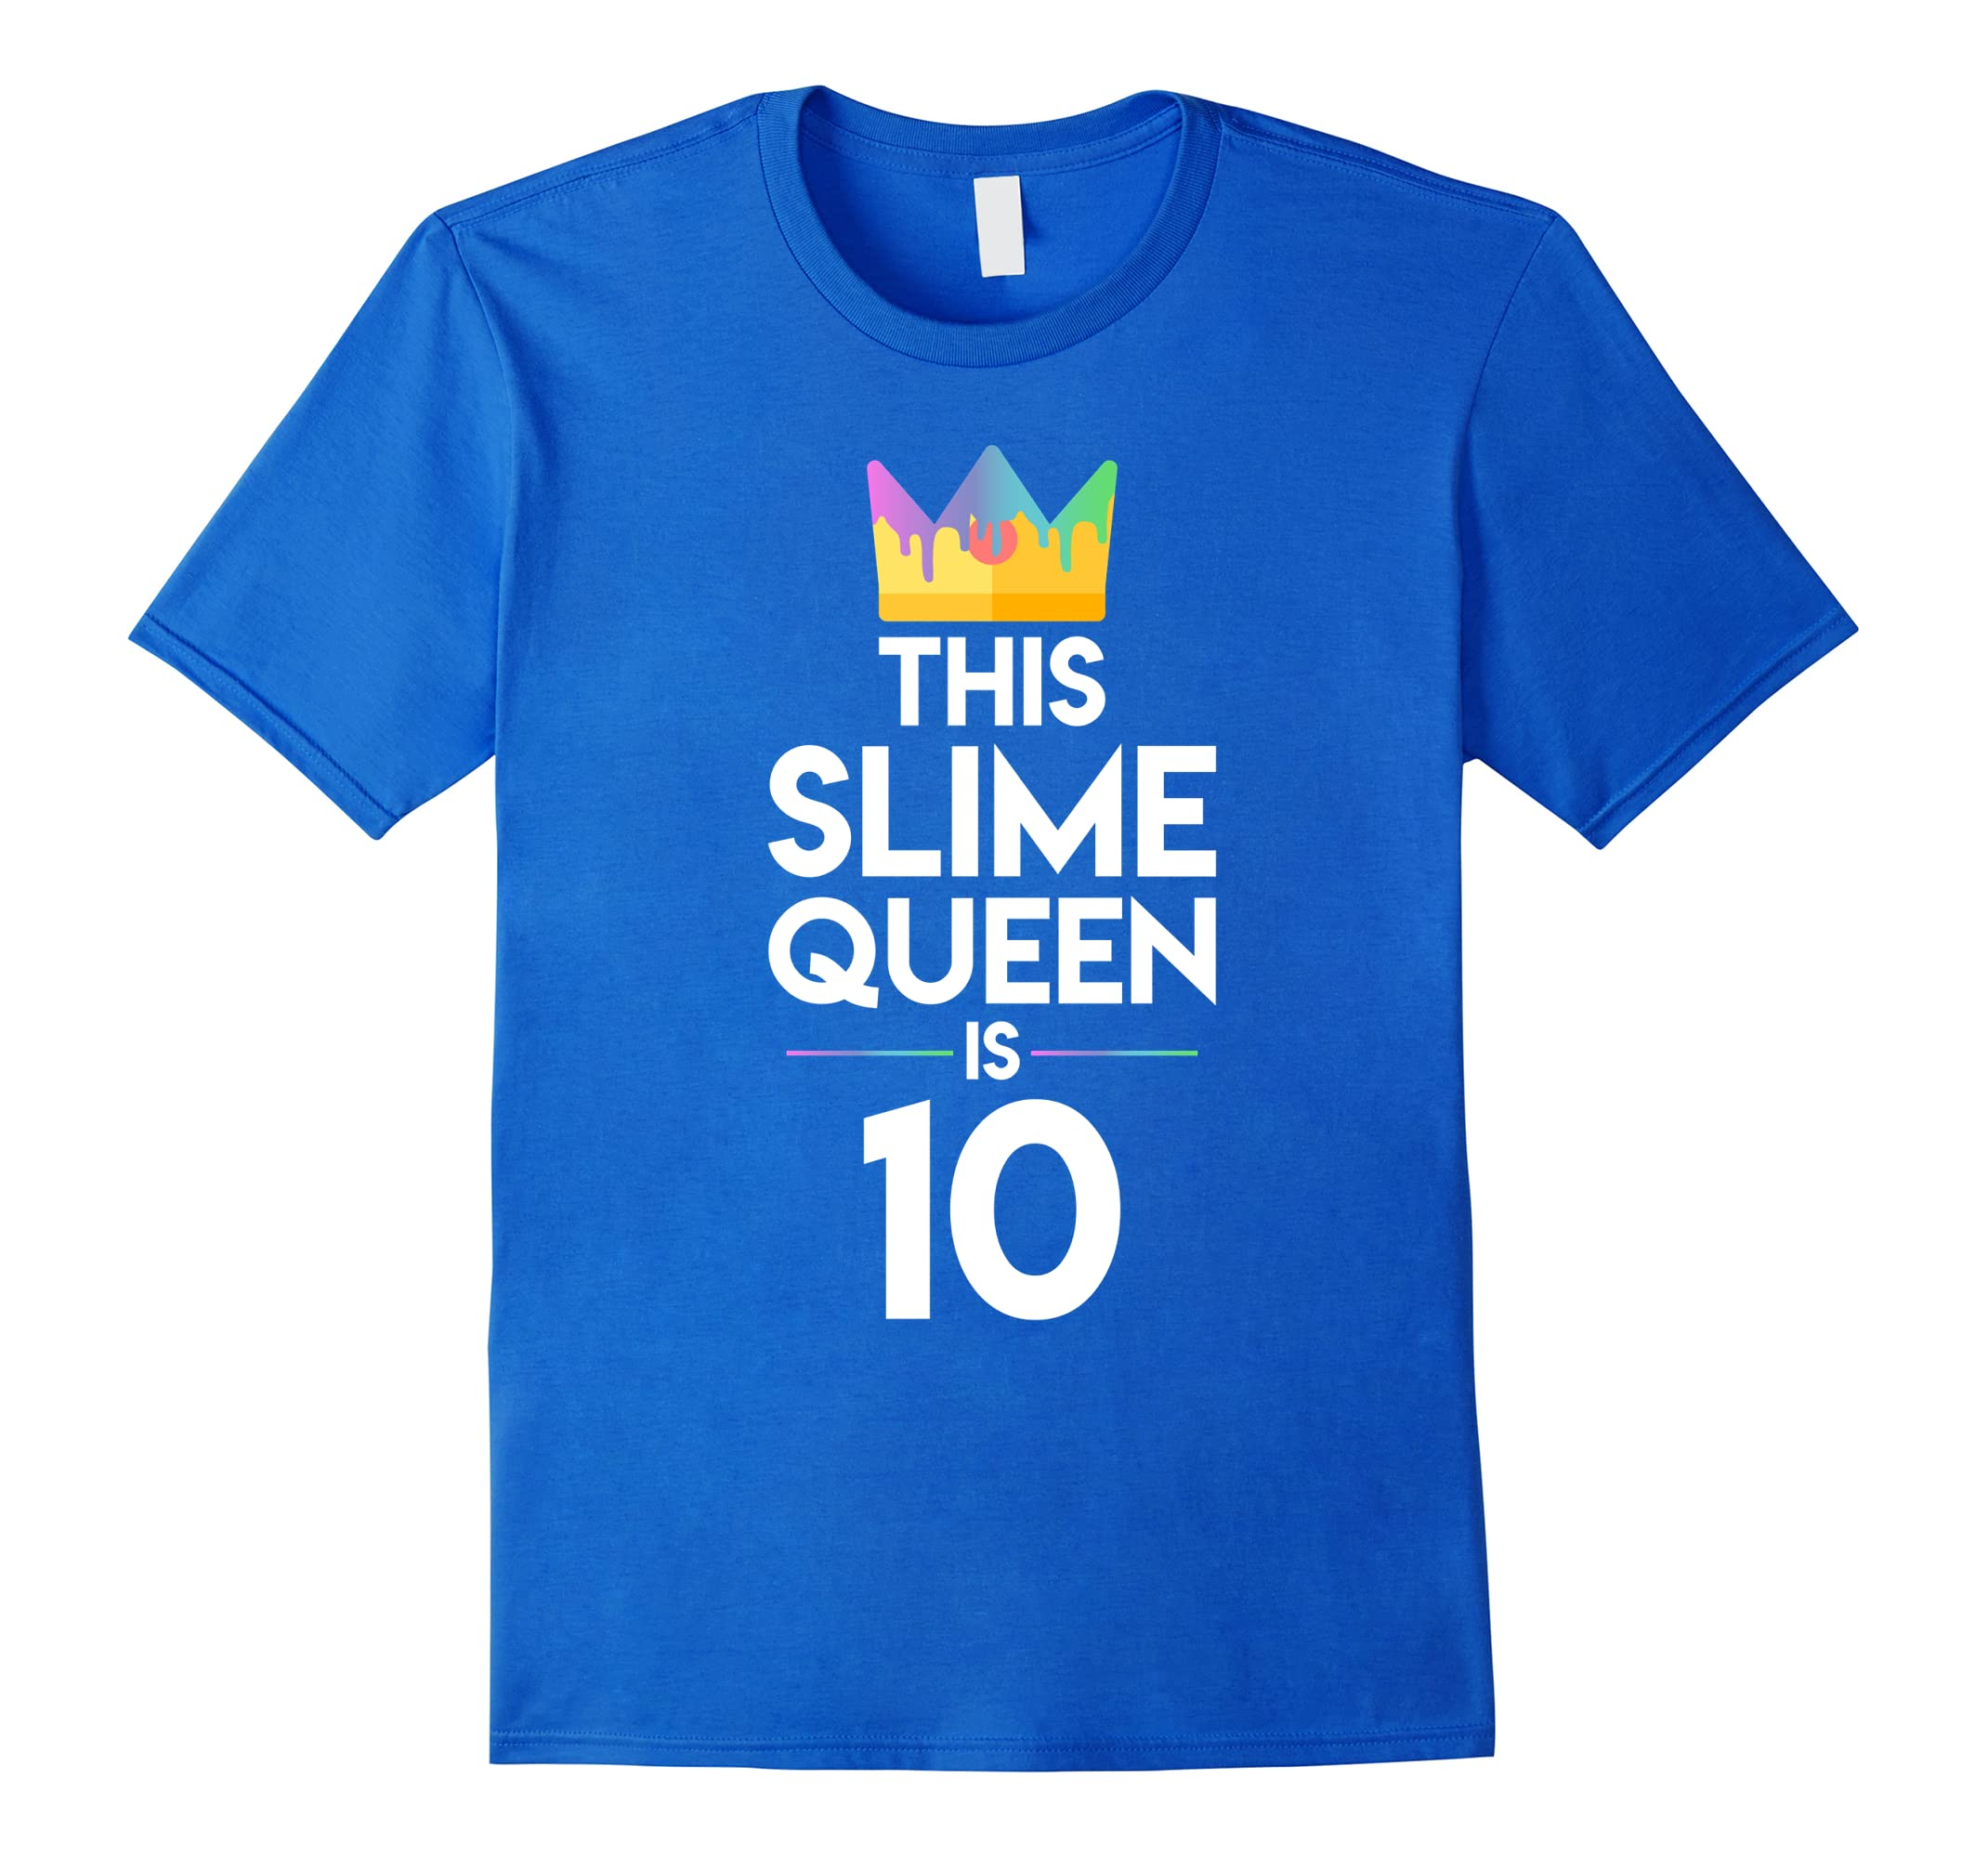 10th Birthday Shirt for Girls This Slime Queen is 10-RT